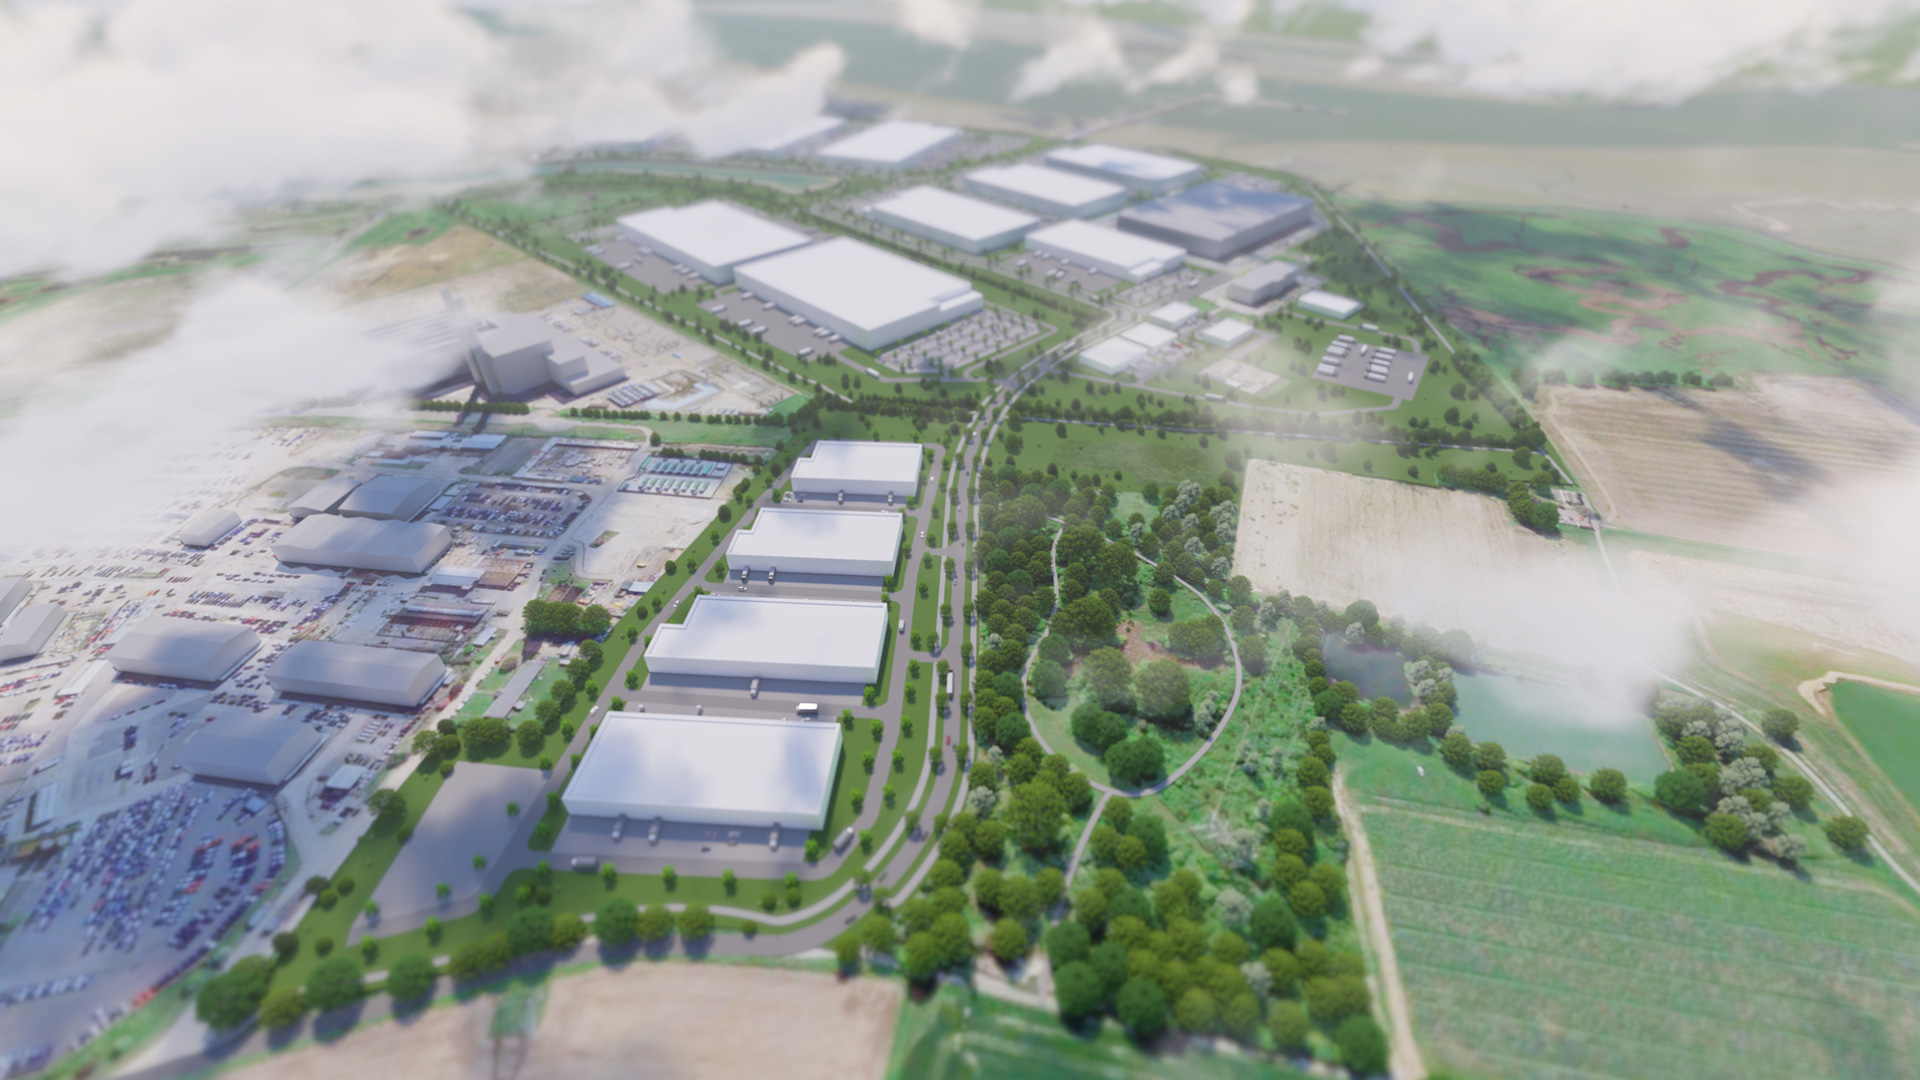 MedwayOne: planning application submitted for new employment development at the former Kingsnorth power station site